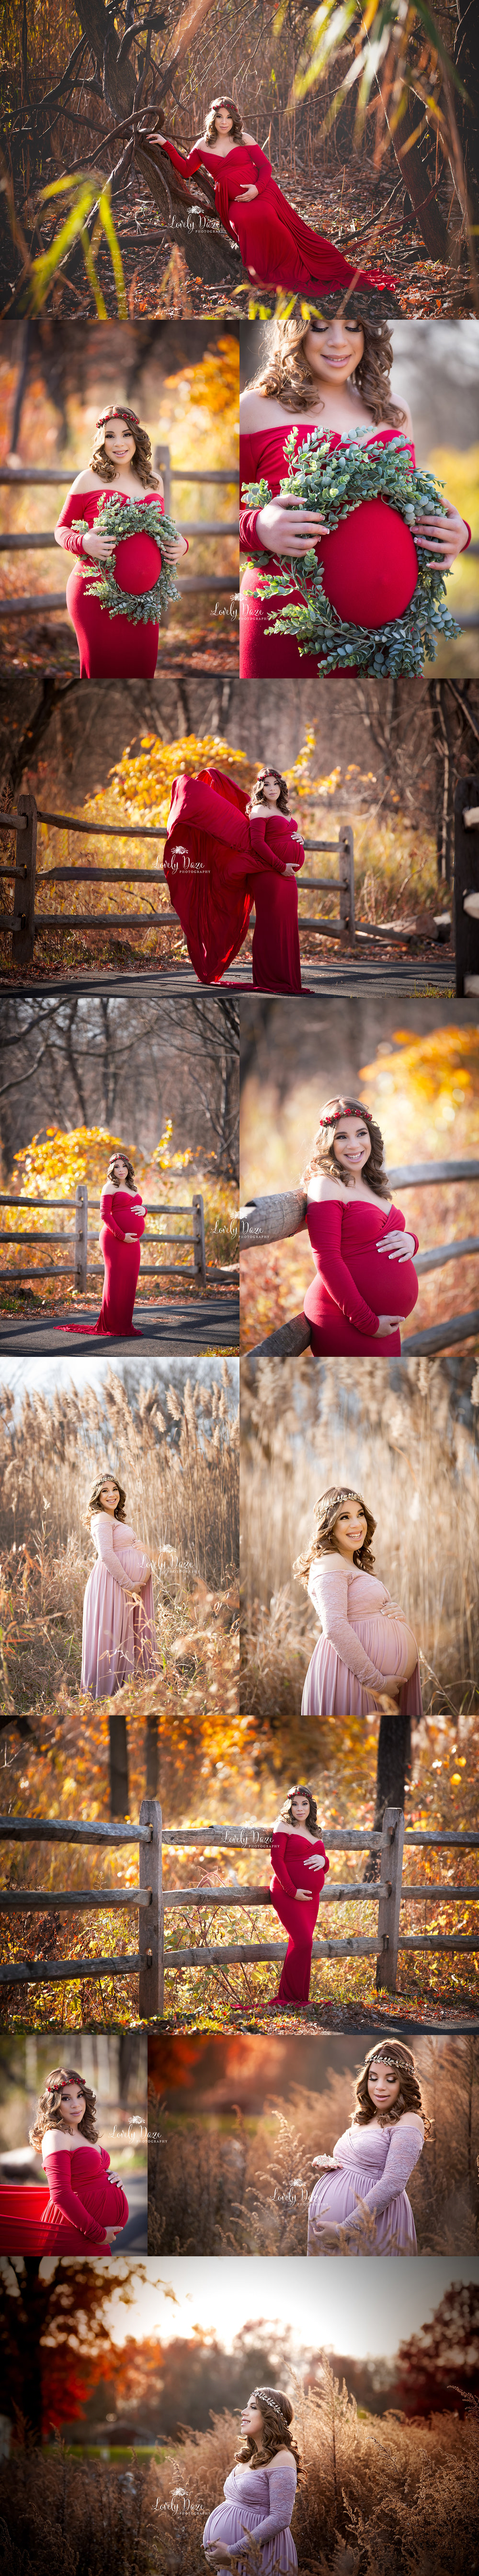 best nj maternity photographer lovely daze photography.jpg